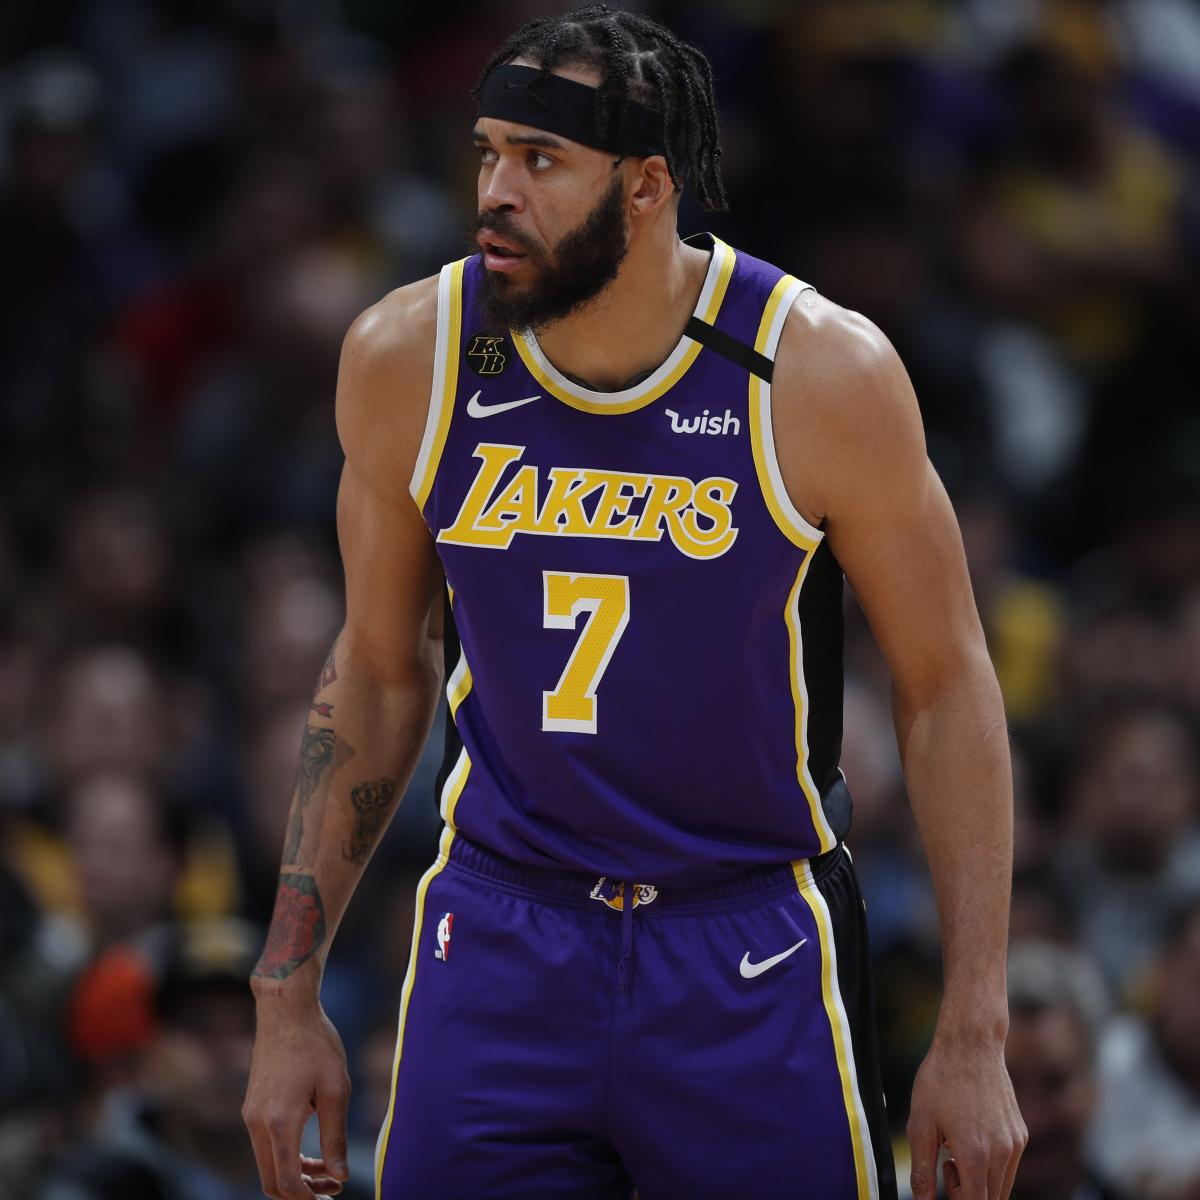 Lakers' JaVale McGee Helped Write, Produce Song on Justin Bieber's 'Changes'